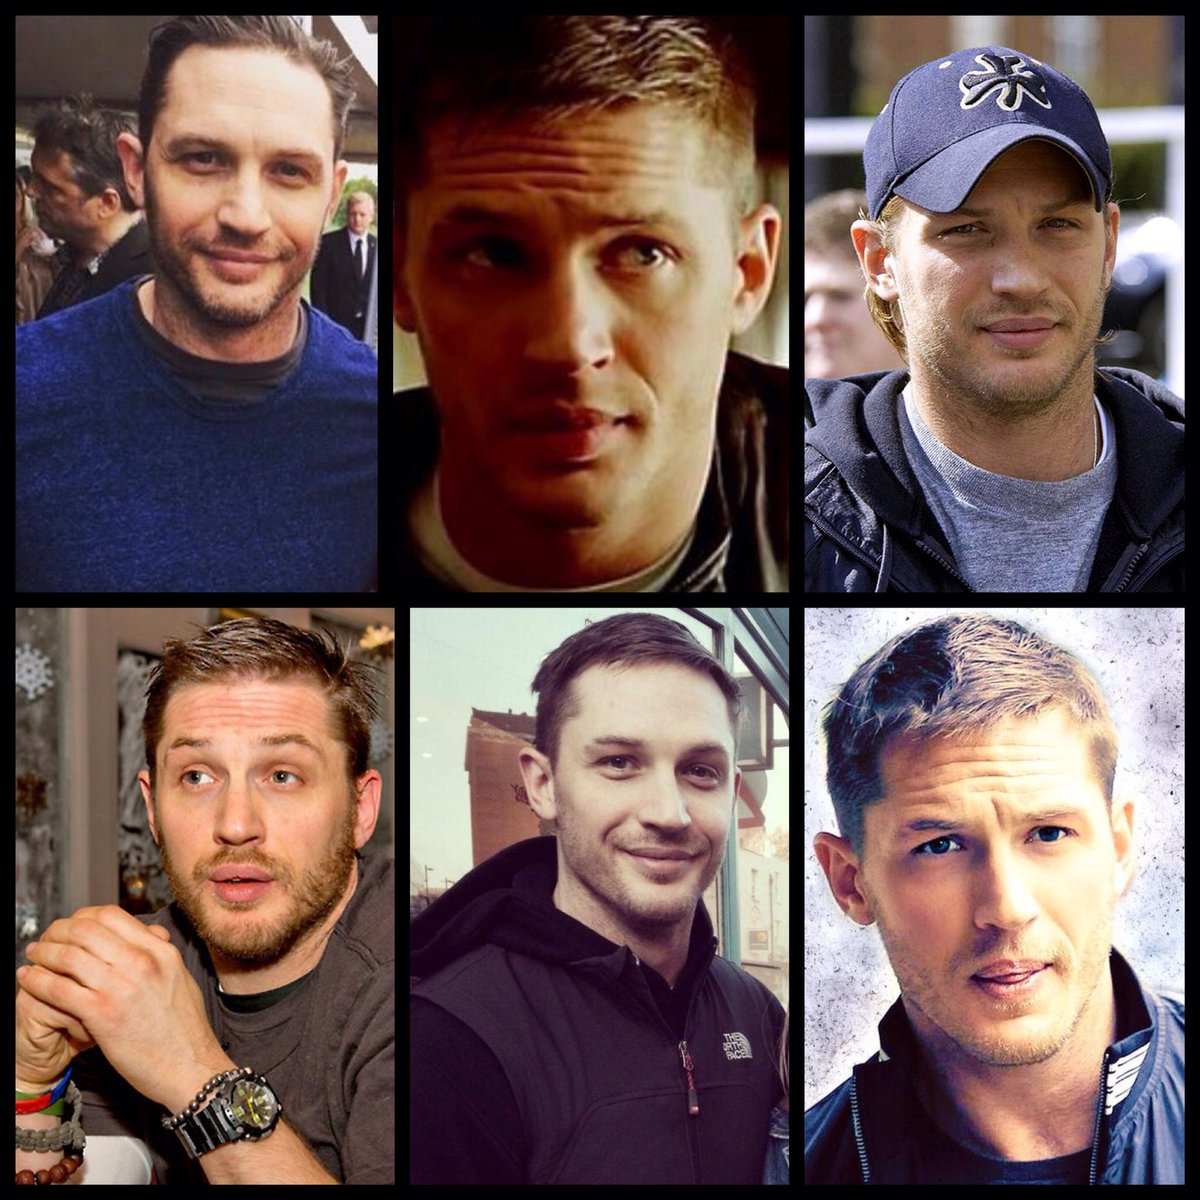 The Most Beautiful Handsome Perfect Man On Earth!  #TomHardy <br>http://pic.twitter.com/vknbkf17Cq